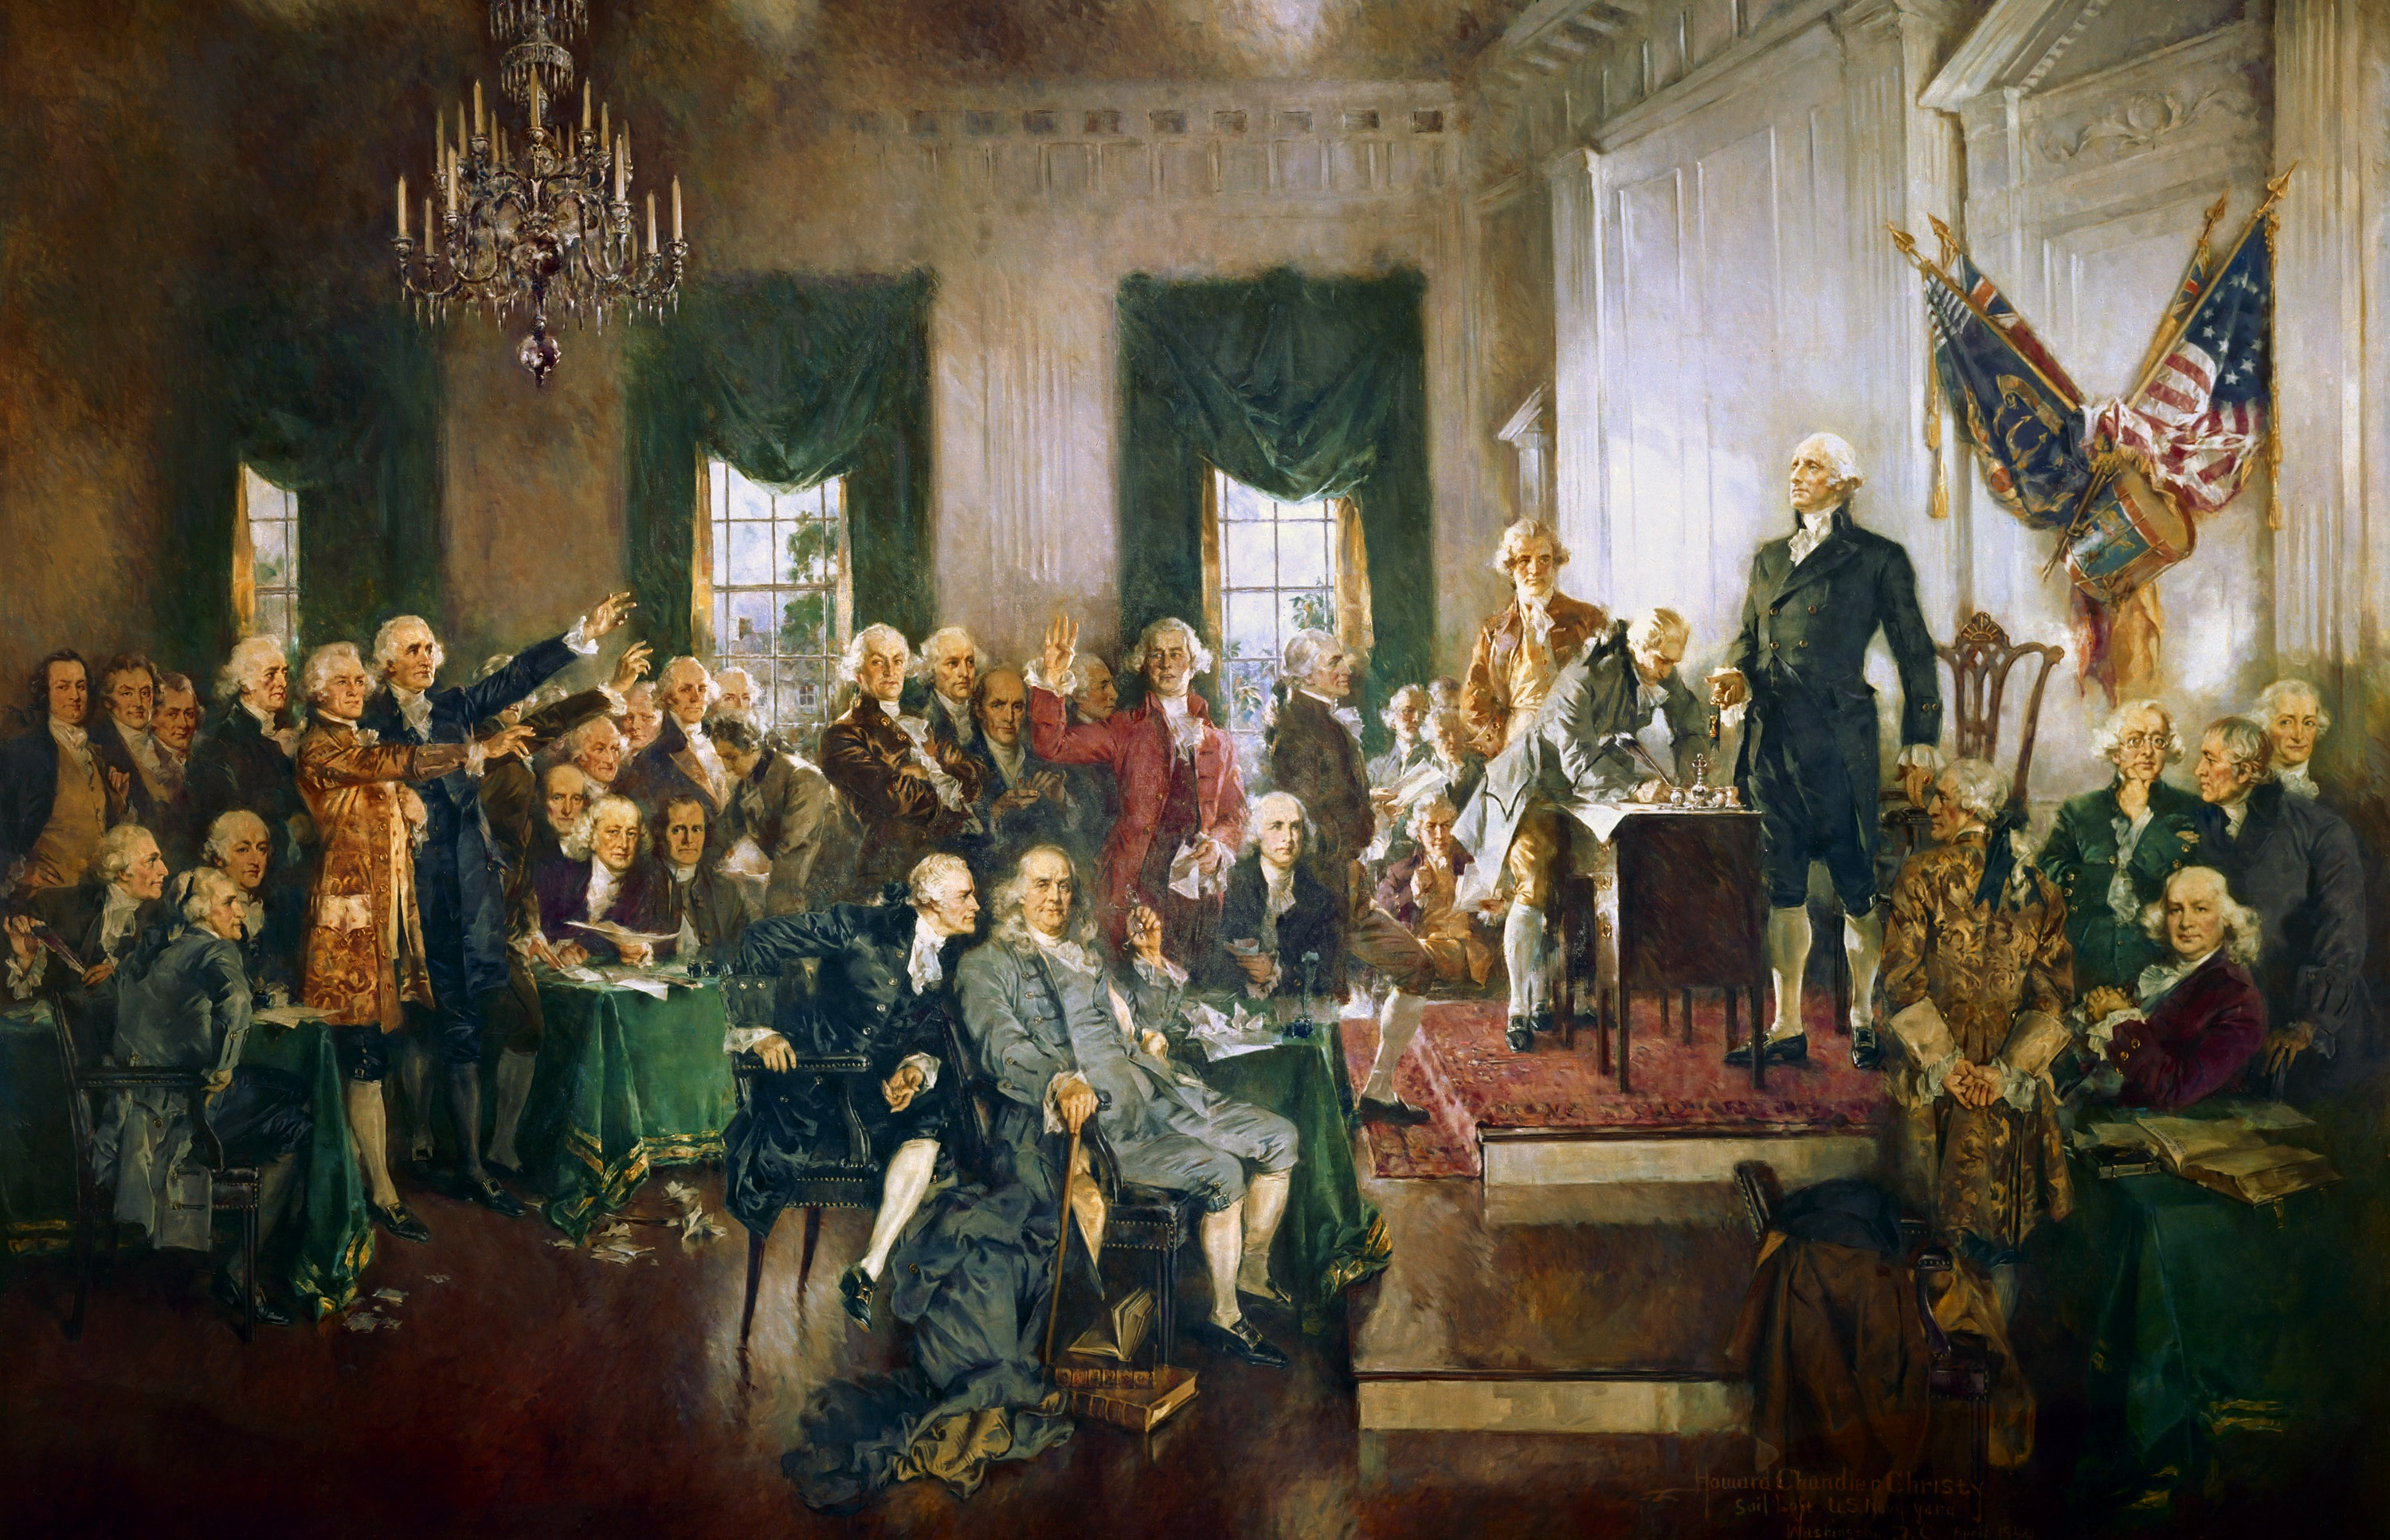 Scene at the Signing of the Constitution of the United States